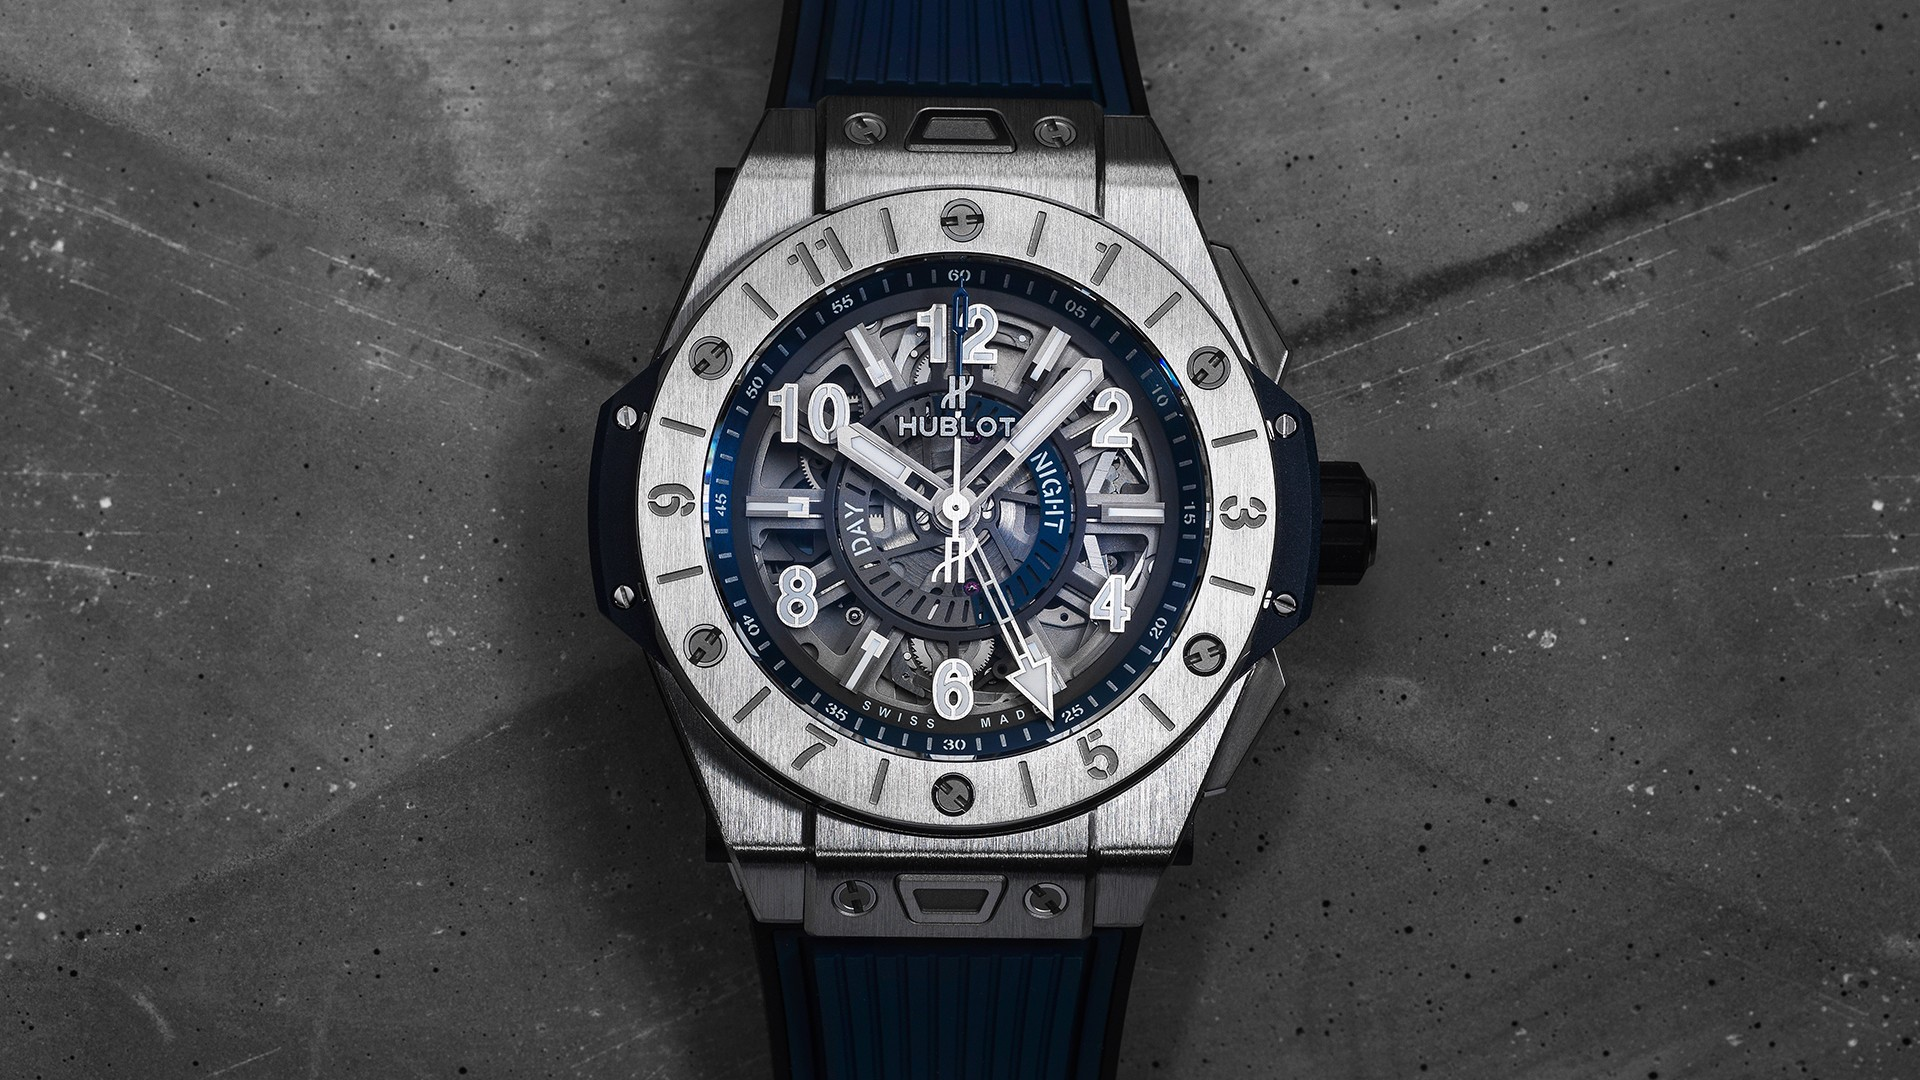 Hublot Big Bang Unico GMT watch